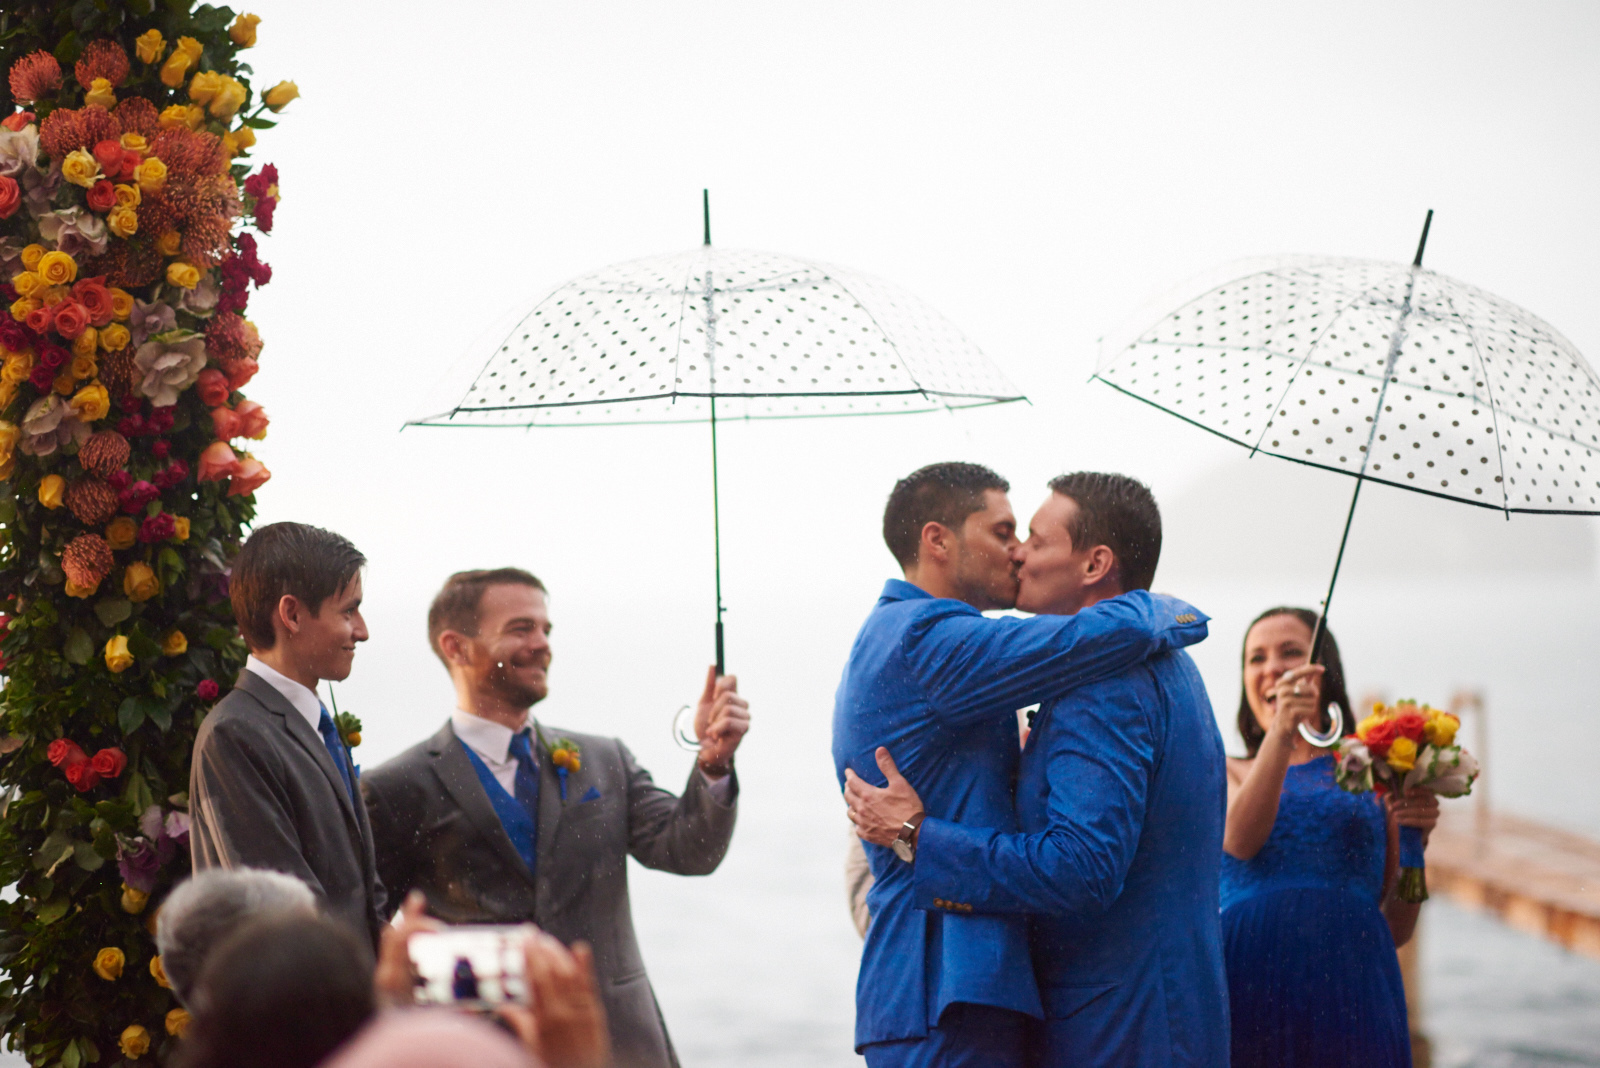 Wedding photographer in Puerto Vallarta, Sayulita, Punta Mita, Nayarit, Mexico - LGBT same sex mariage - couple kissing